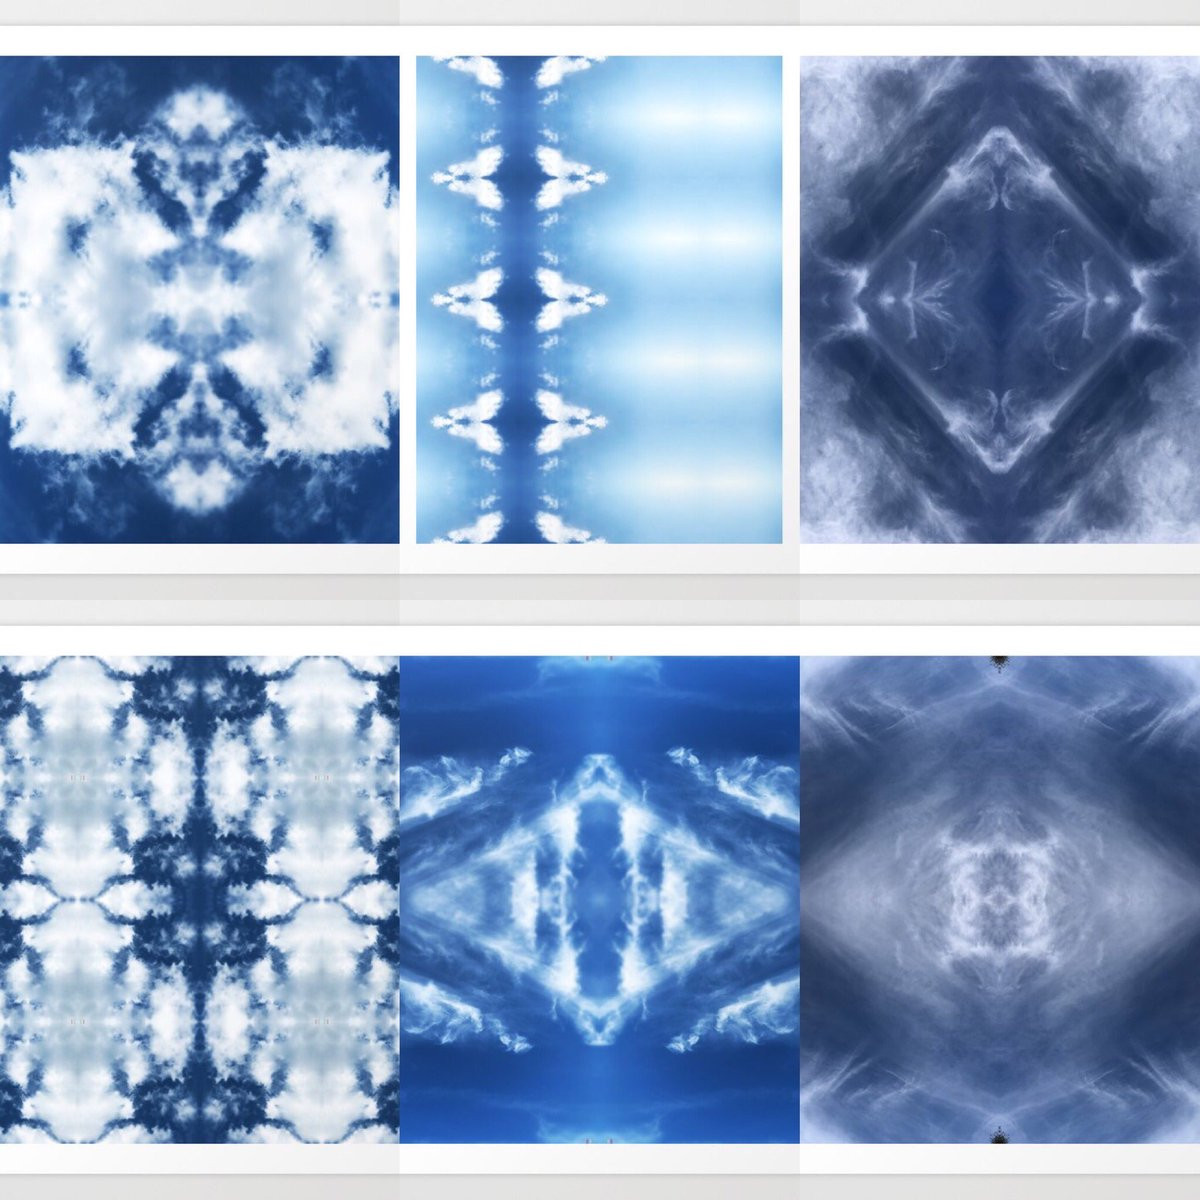 Tie Dye Collection  Tie Dyes that are actually photographs of clouds and sky 🤍💙  https://t.co/fksLj7cxZM #colorfulhome #homedecor #Christmas2020 #christmasiscoming #photographer #society6 #BlackFriday2020 #BlackFriday #giftideas #holidayseason #shopsmallbusiness #coastaldecor https://t.co/Xrb8u3TnDb